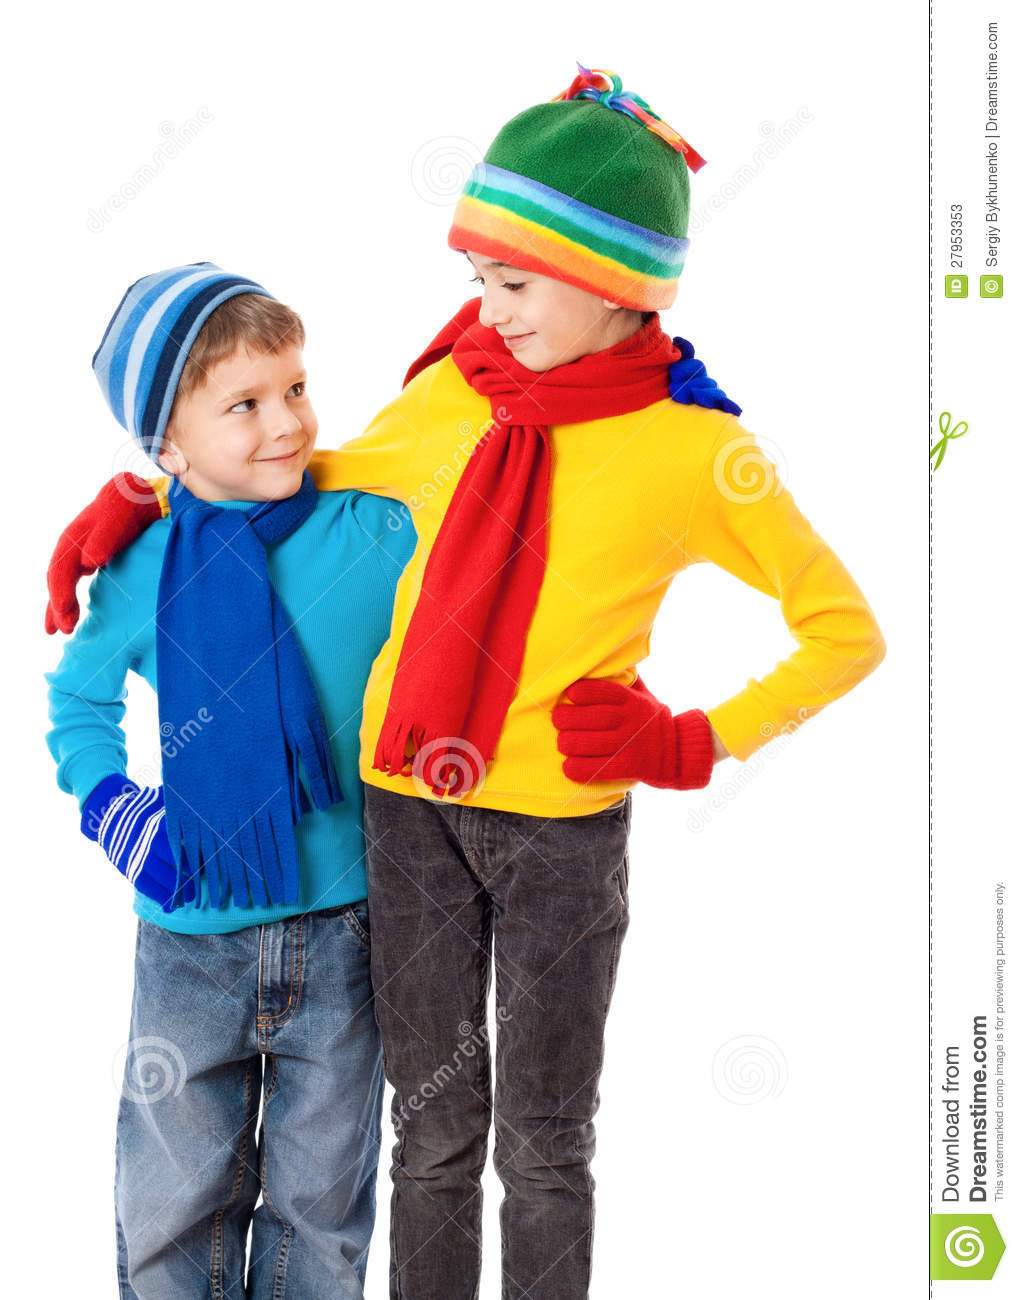 Two Smiling Kids In Winter Clothes Stock Photos - Image: 27953353